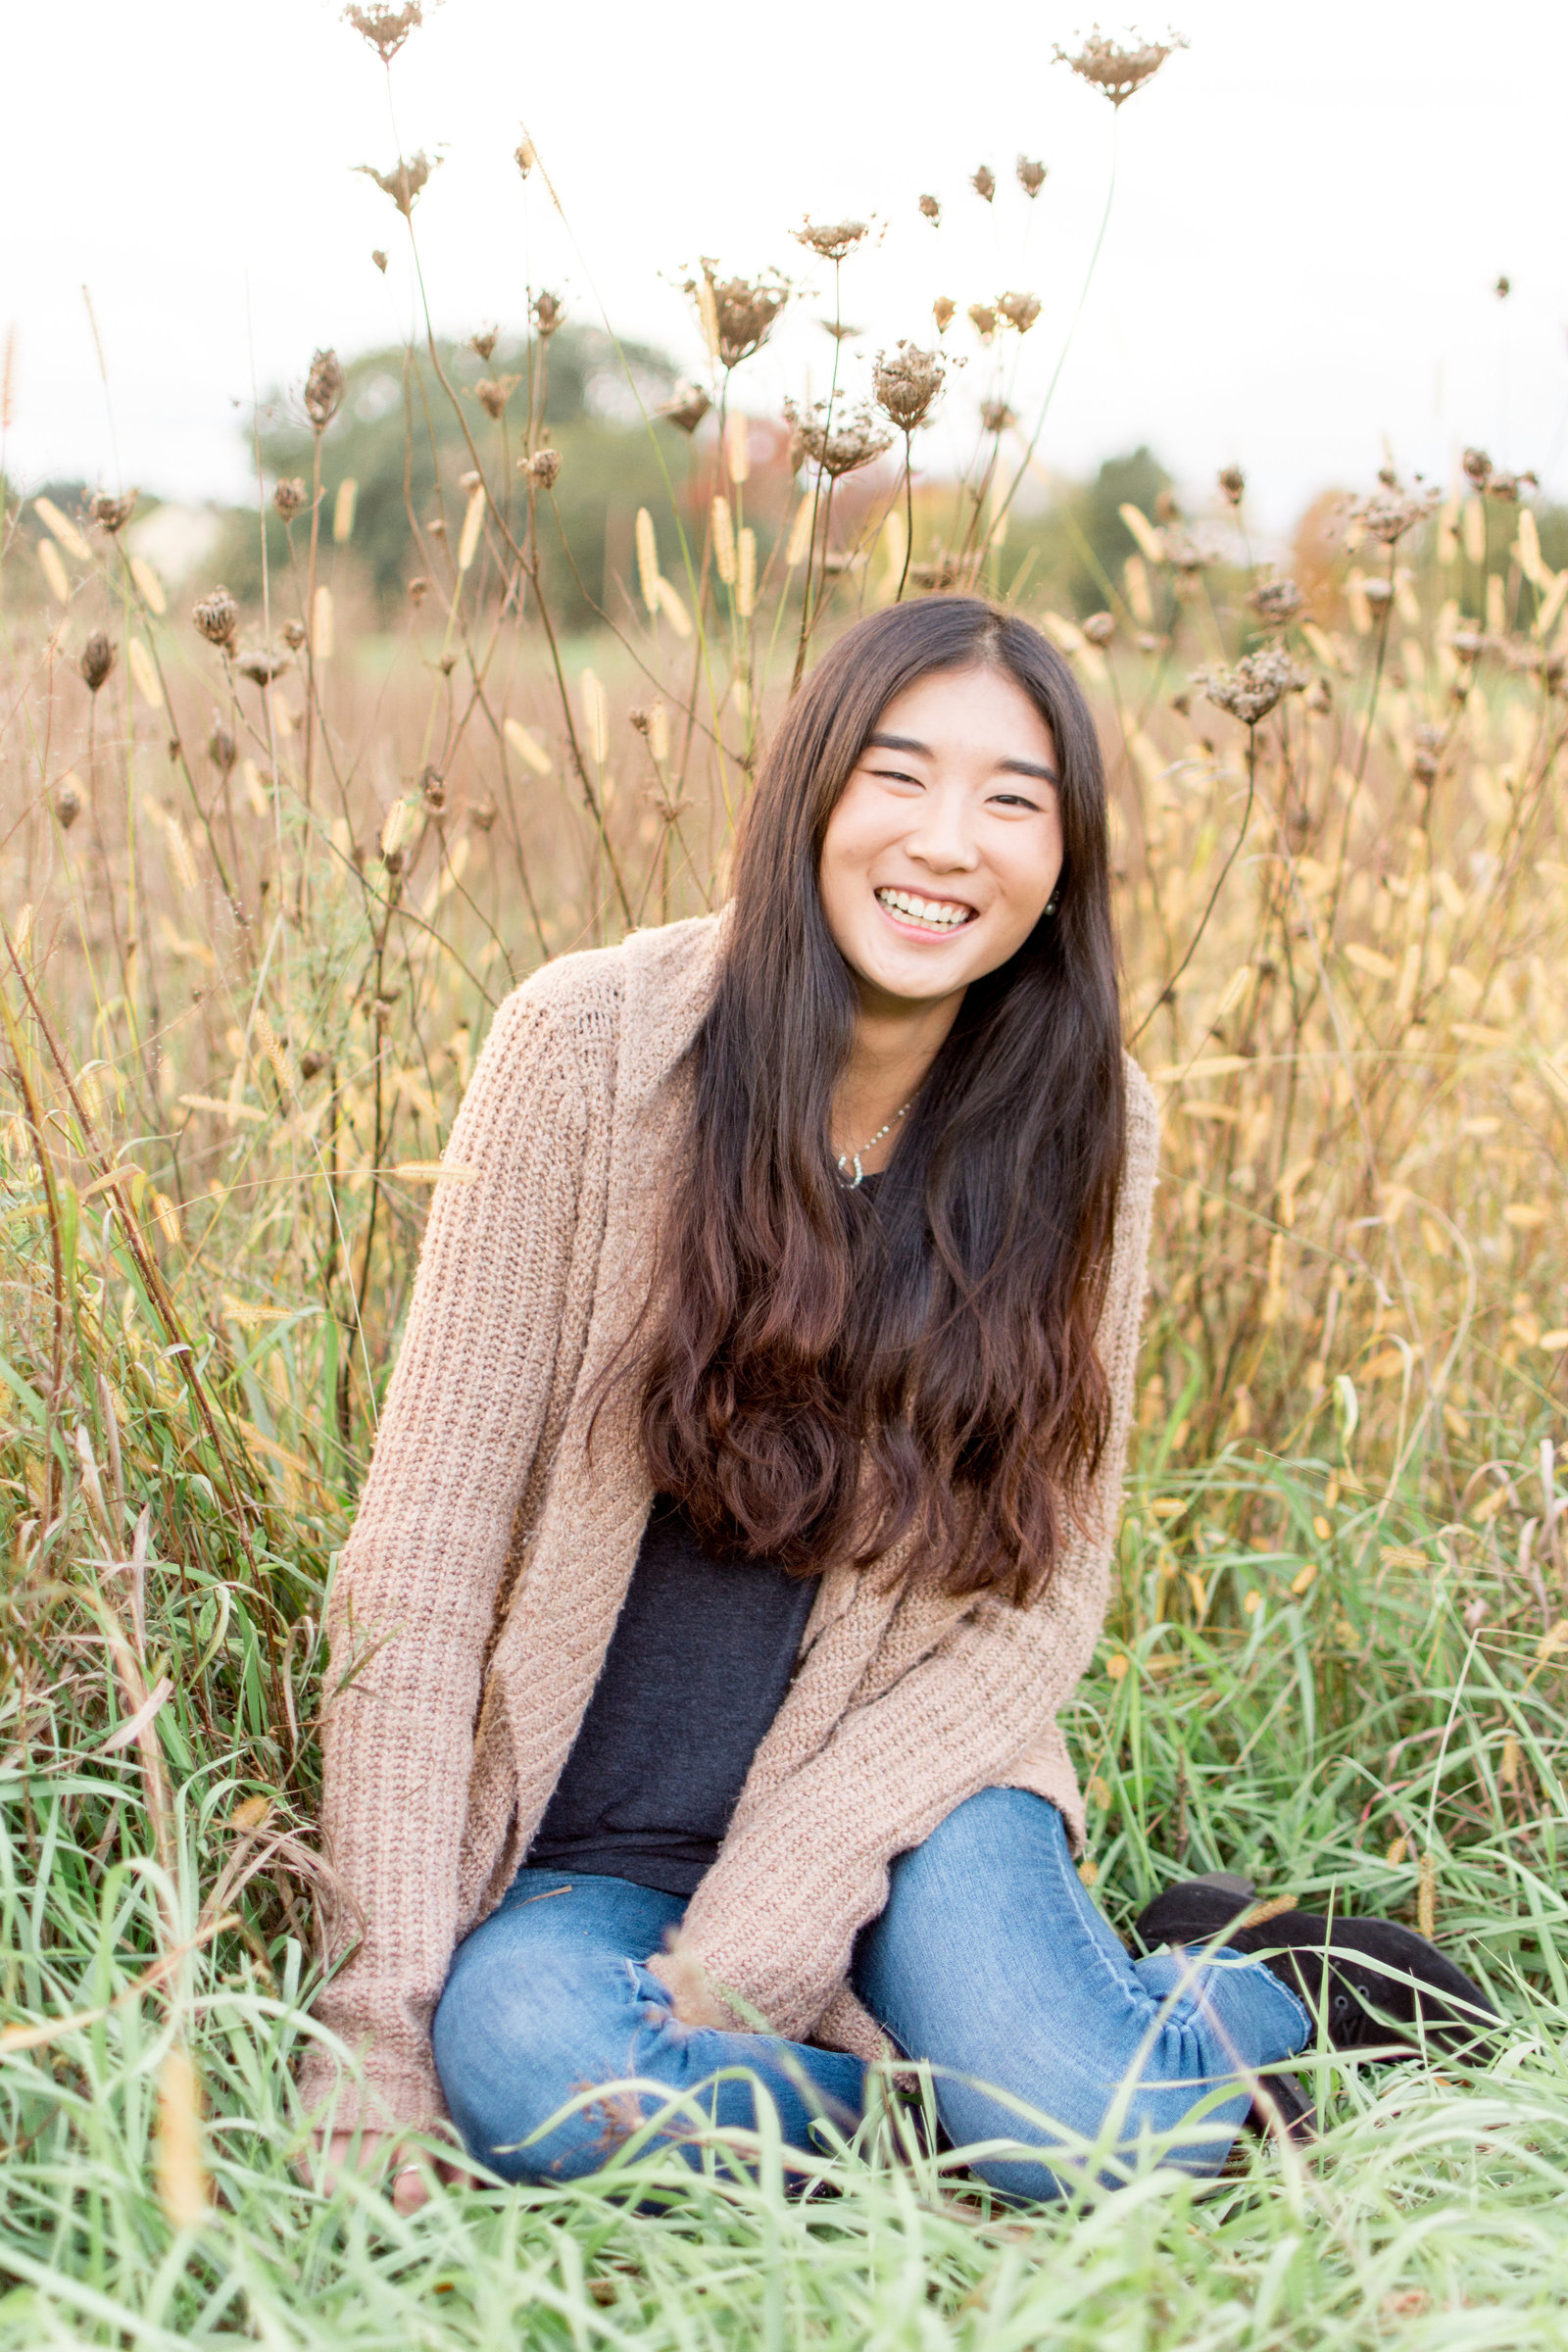 Laughing HS Senior Girl